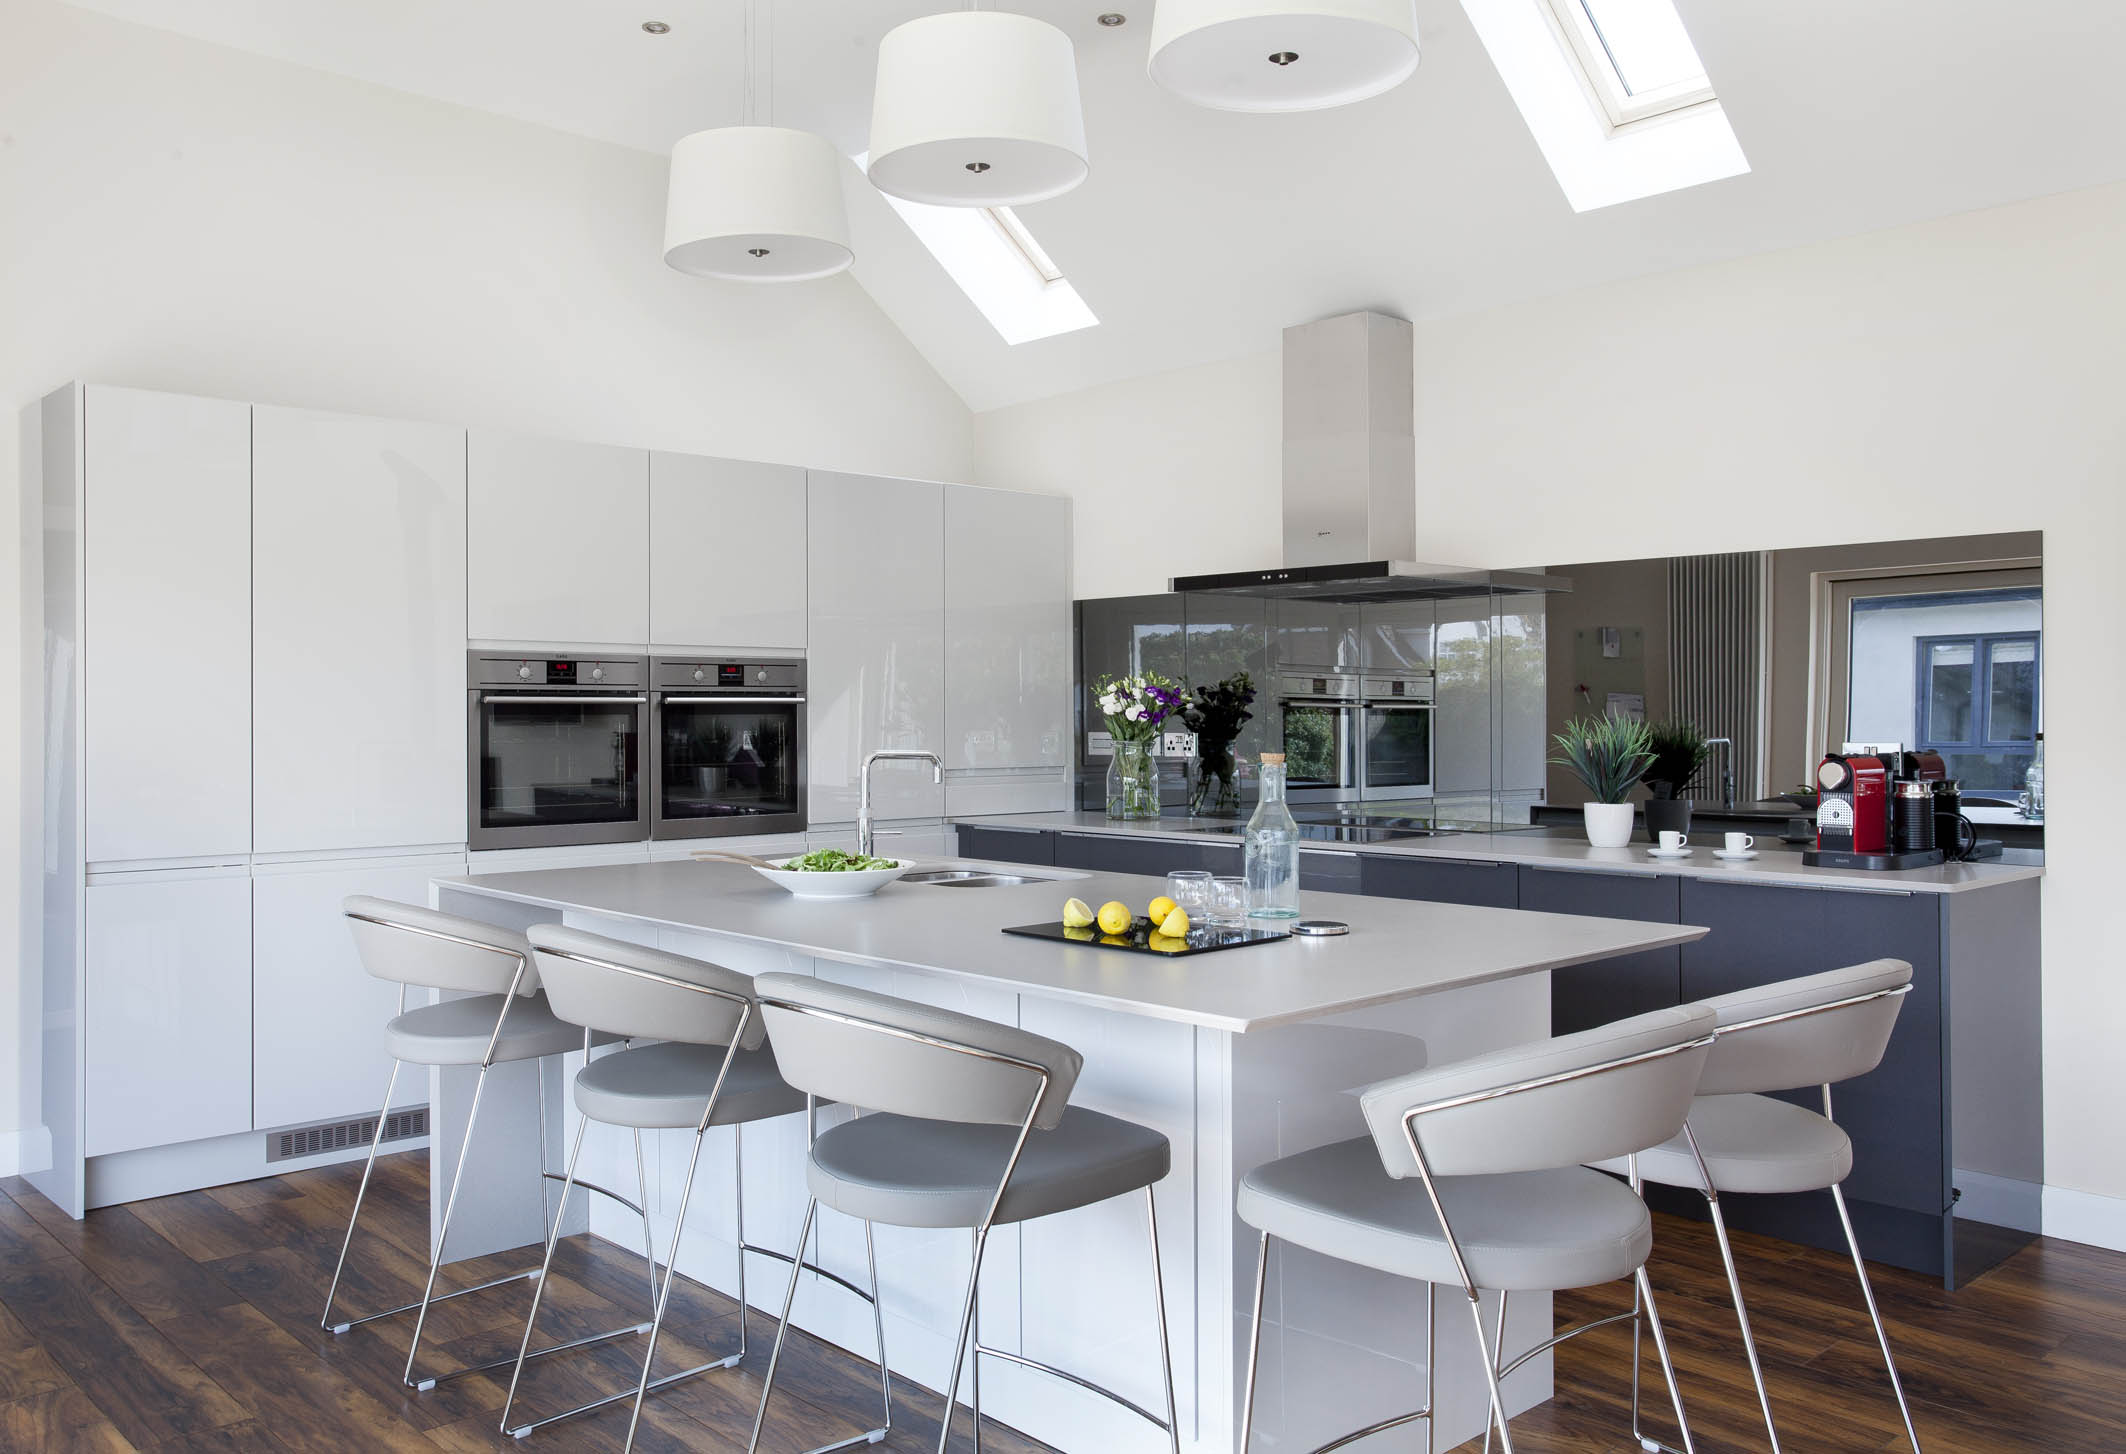 Kitchen Blog- The latest kitchen and showroom news